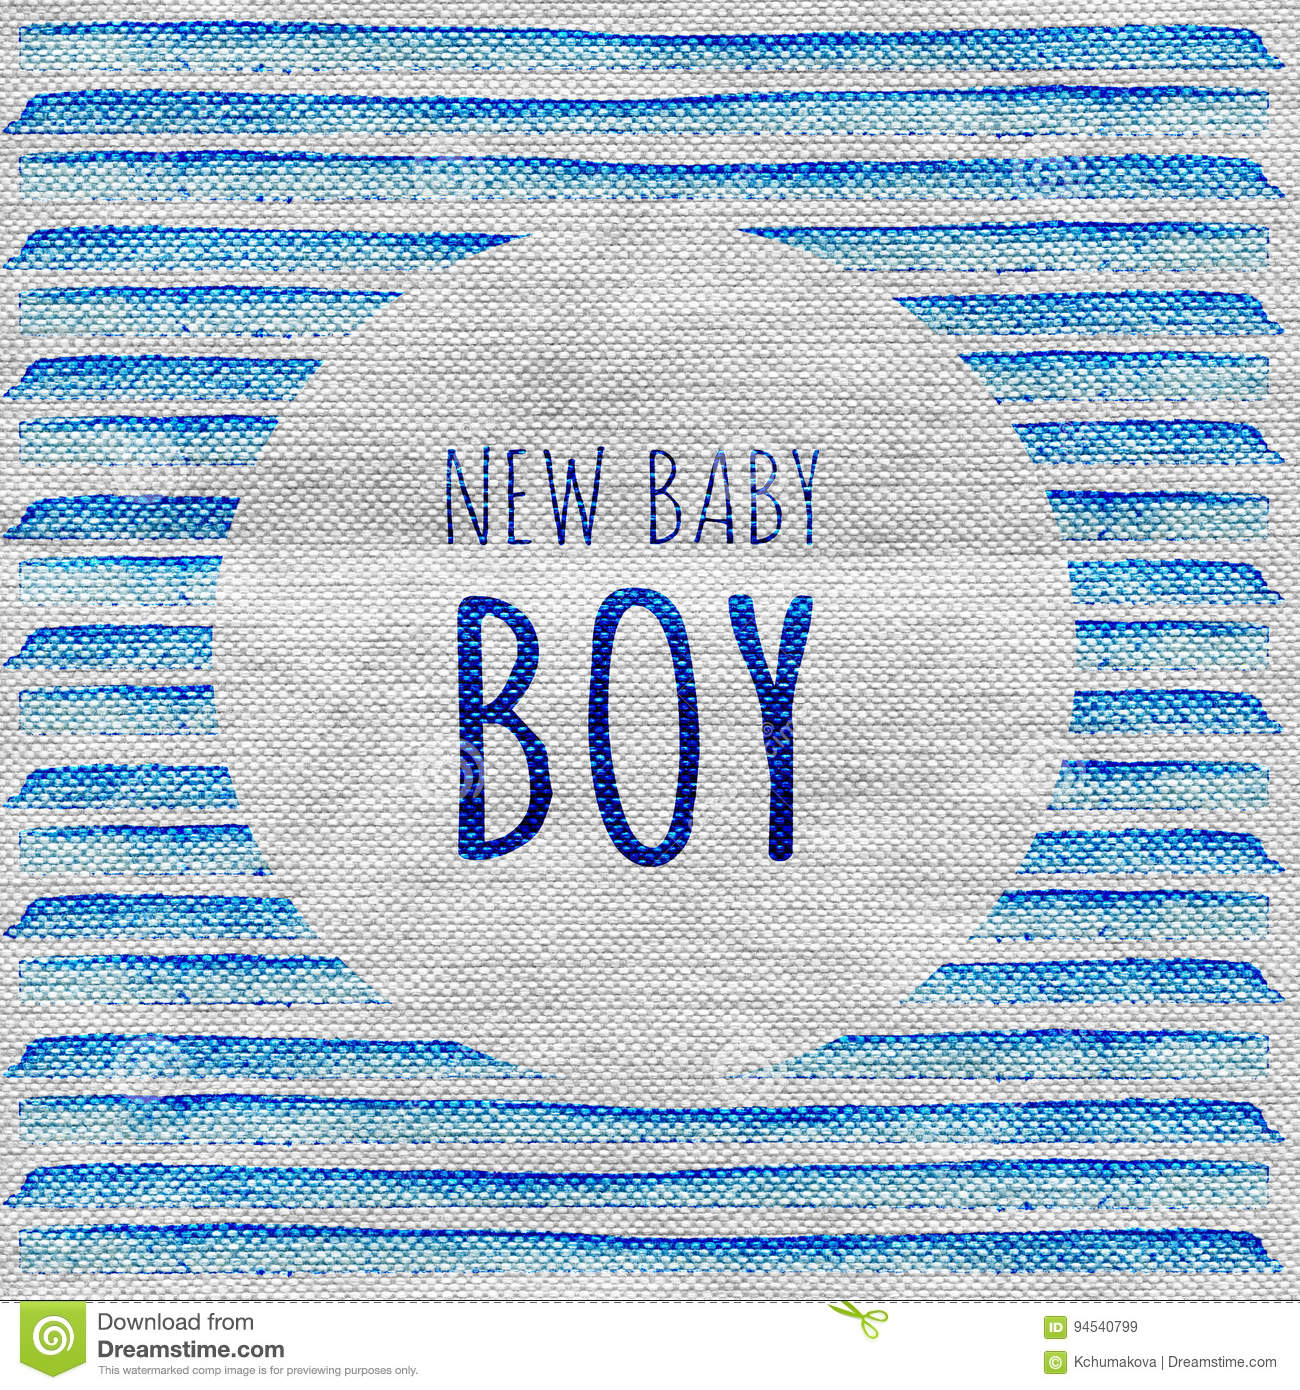 Baby Shower Invitation Card Its A Boy New Baby Boy Stock